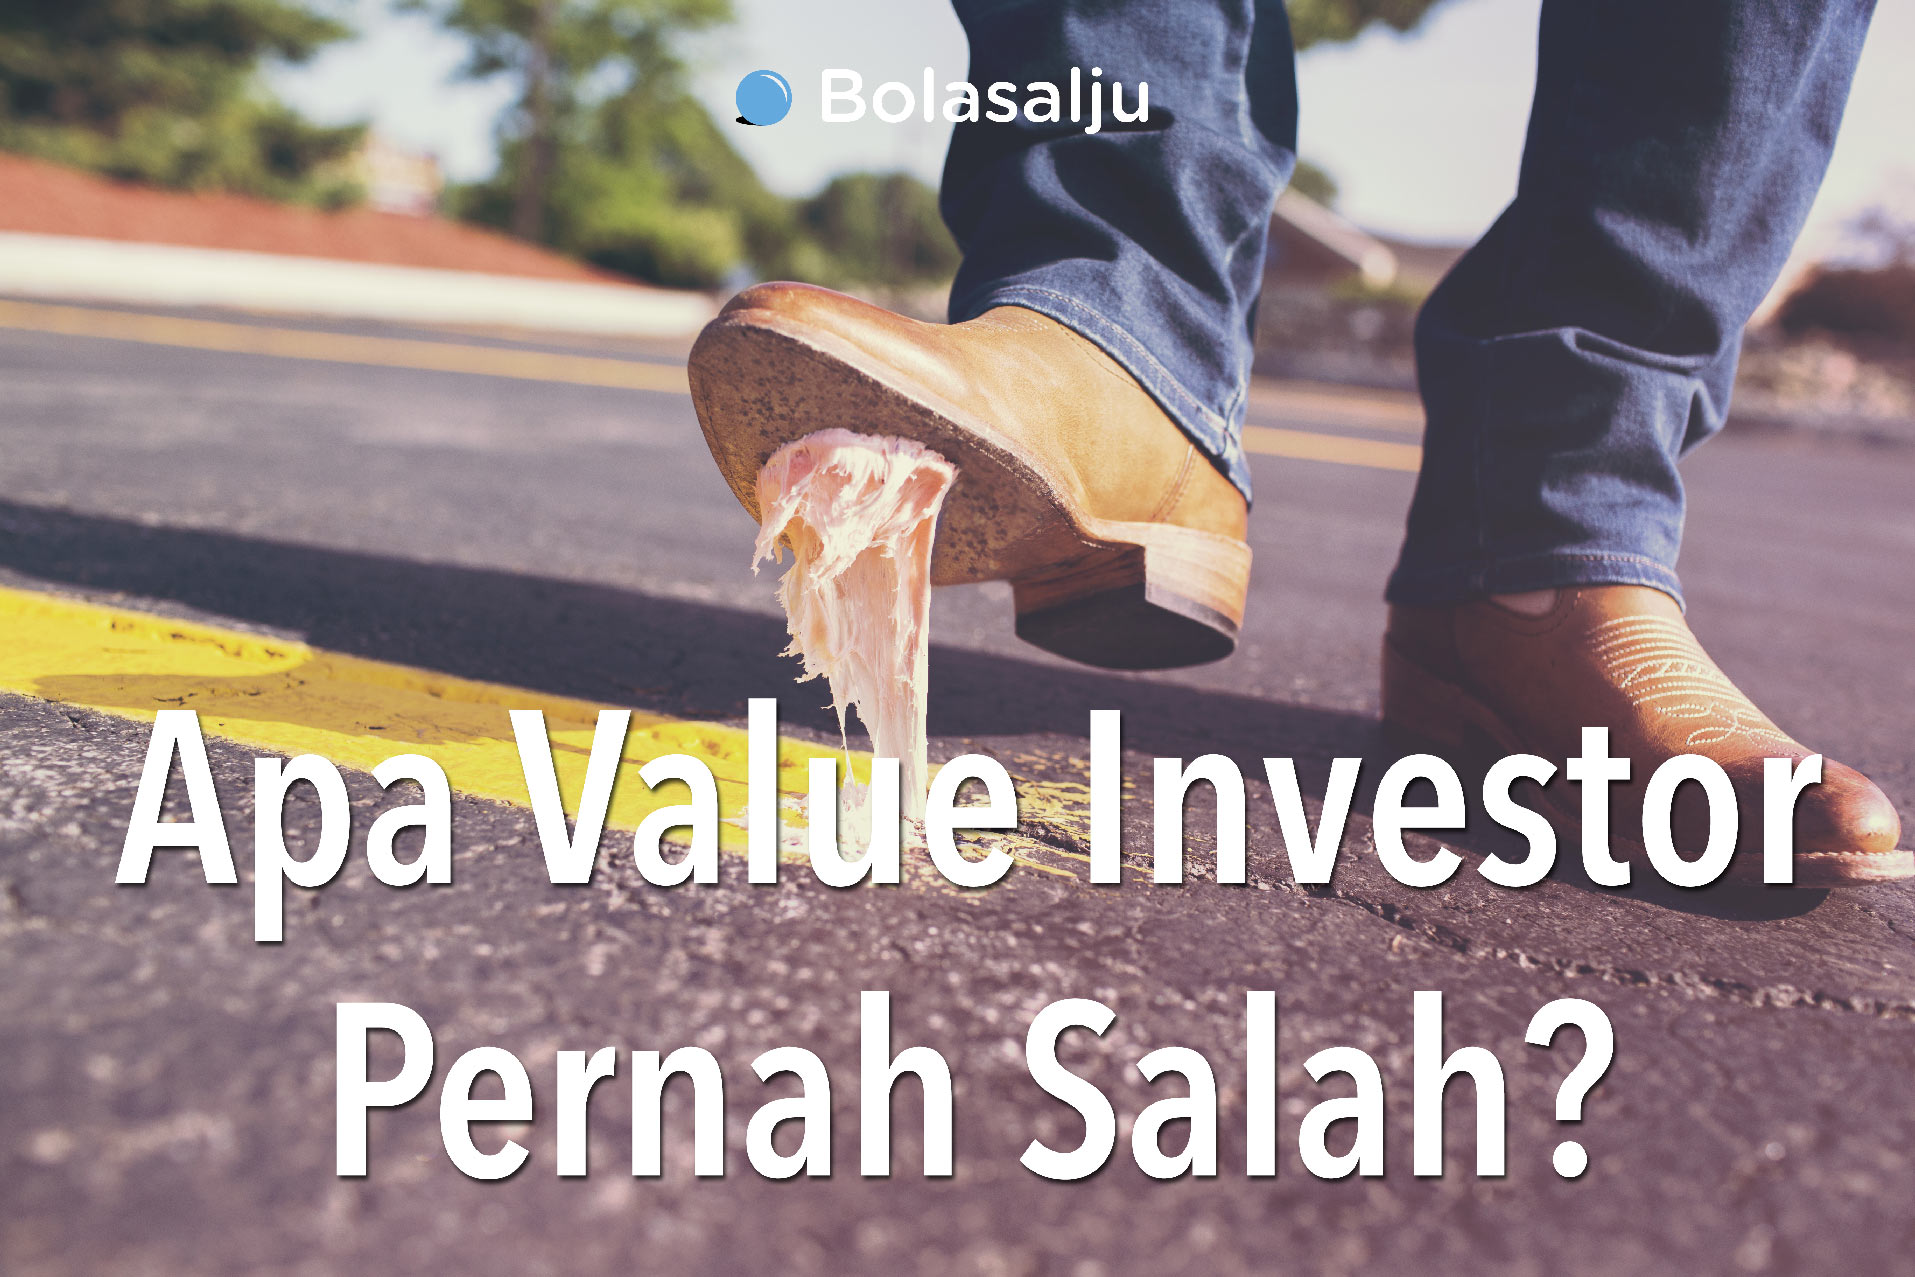 Apa Value Investor Pernah Salah? Credit photo: gratisography